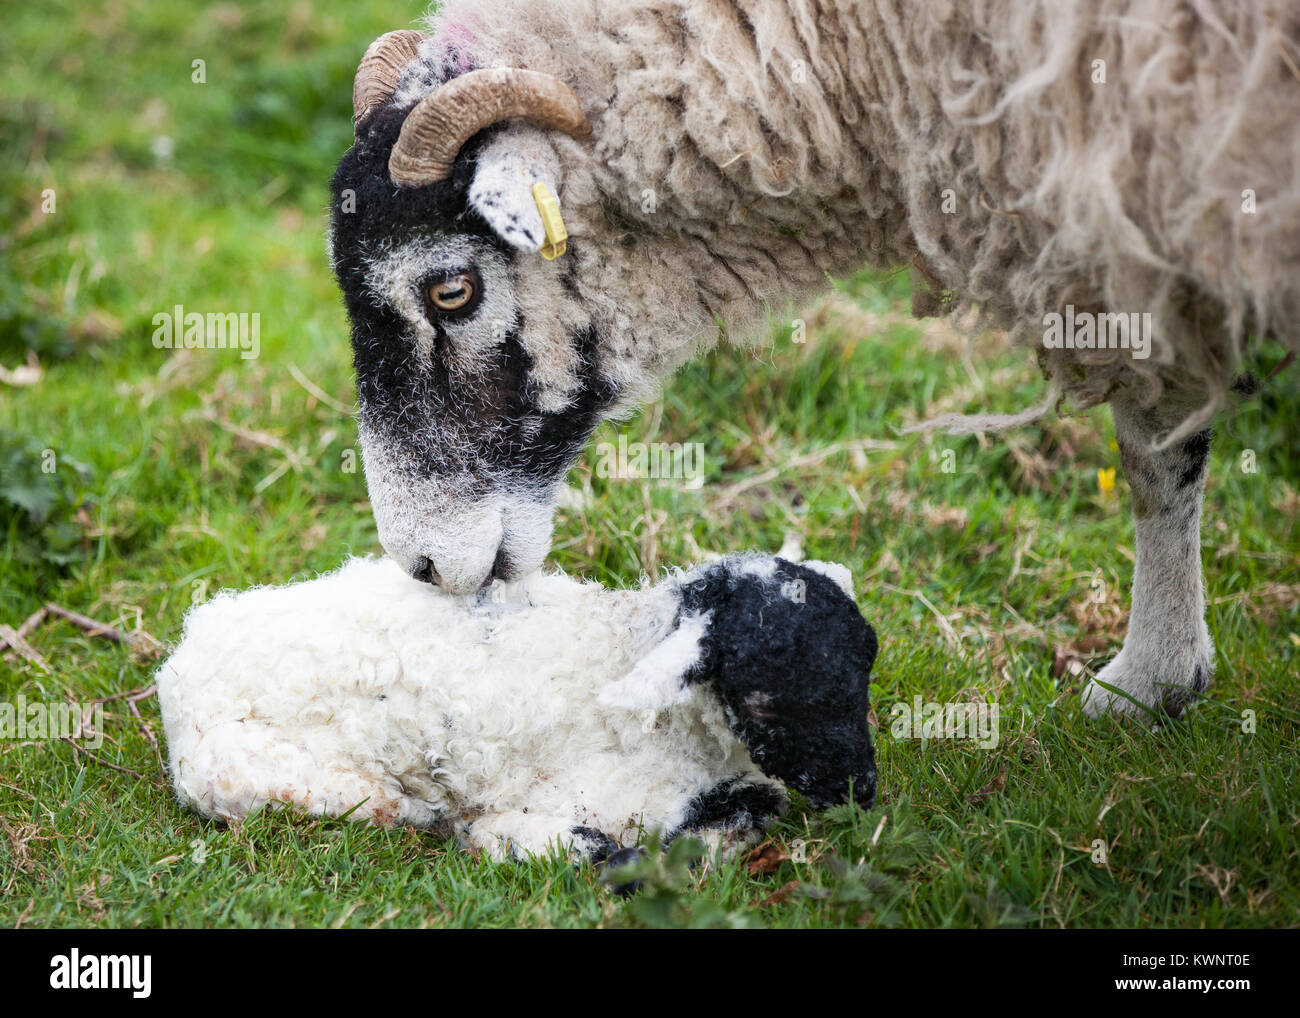 A Swaledale ewe and her newborn lamb bond shortly after birth. - Stock Image